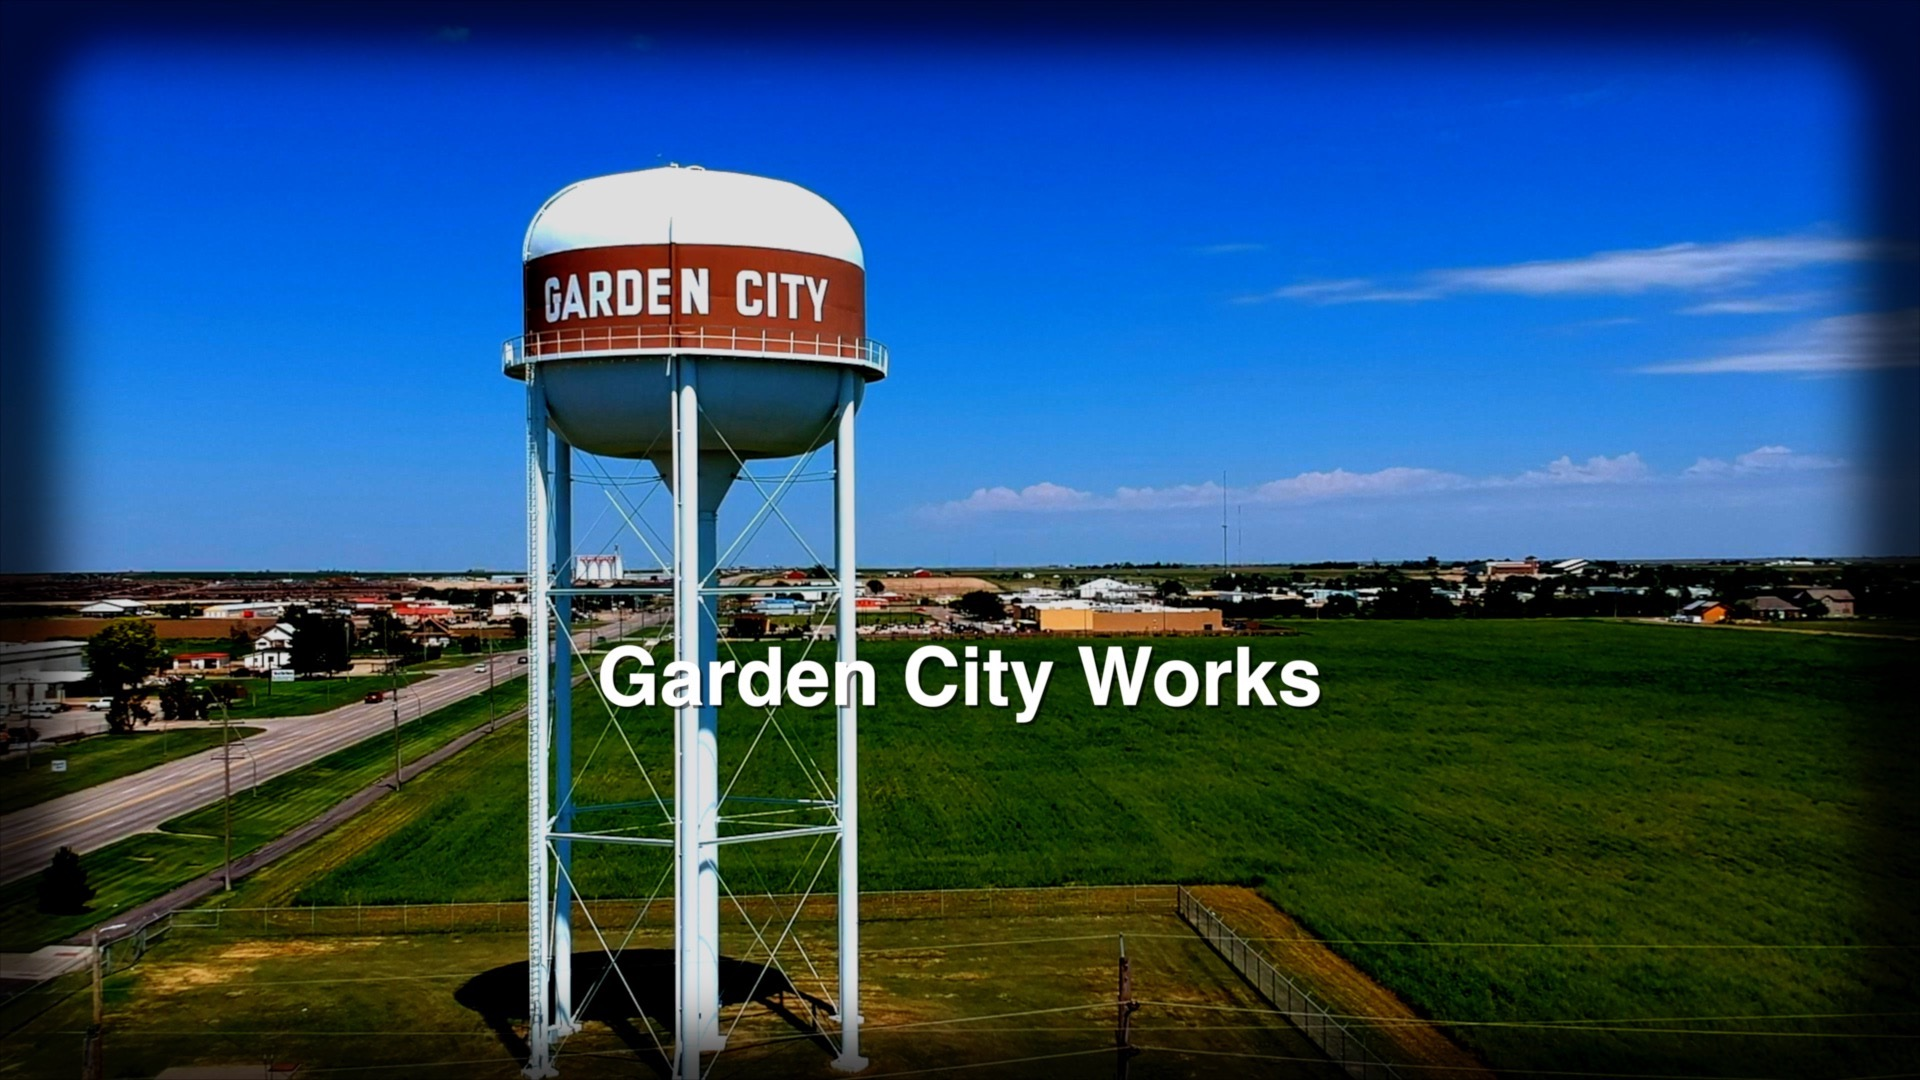 Garden City Works - Film Discussion Event Image